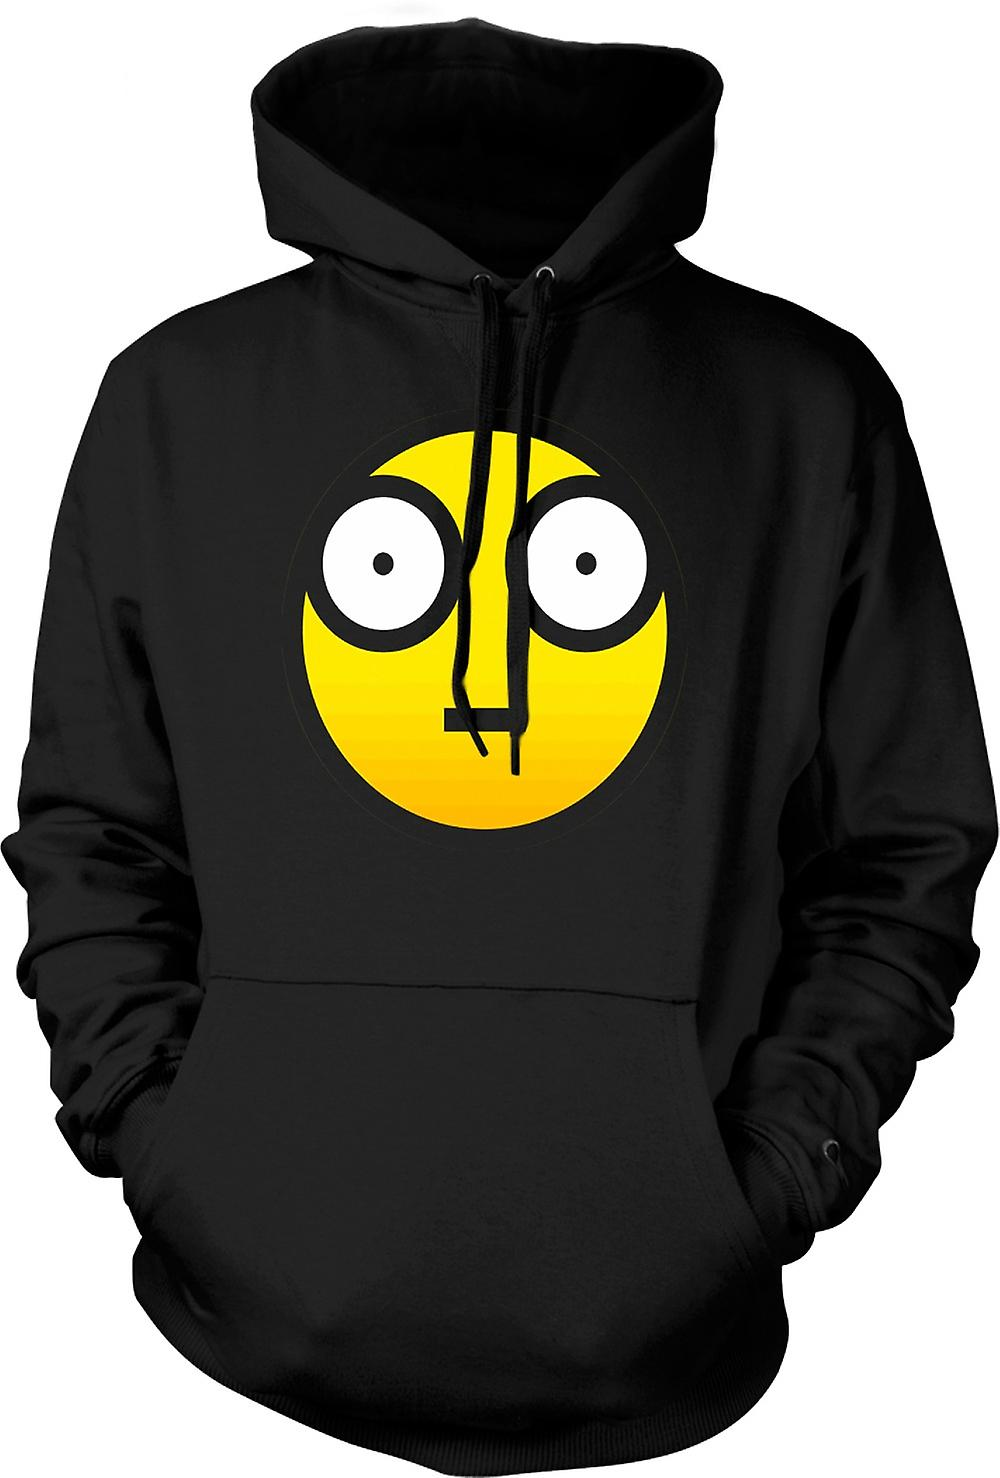 Kids Hoodie - Smiley Face - Cool Design